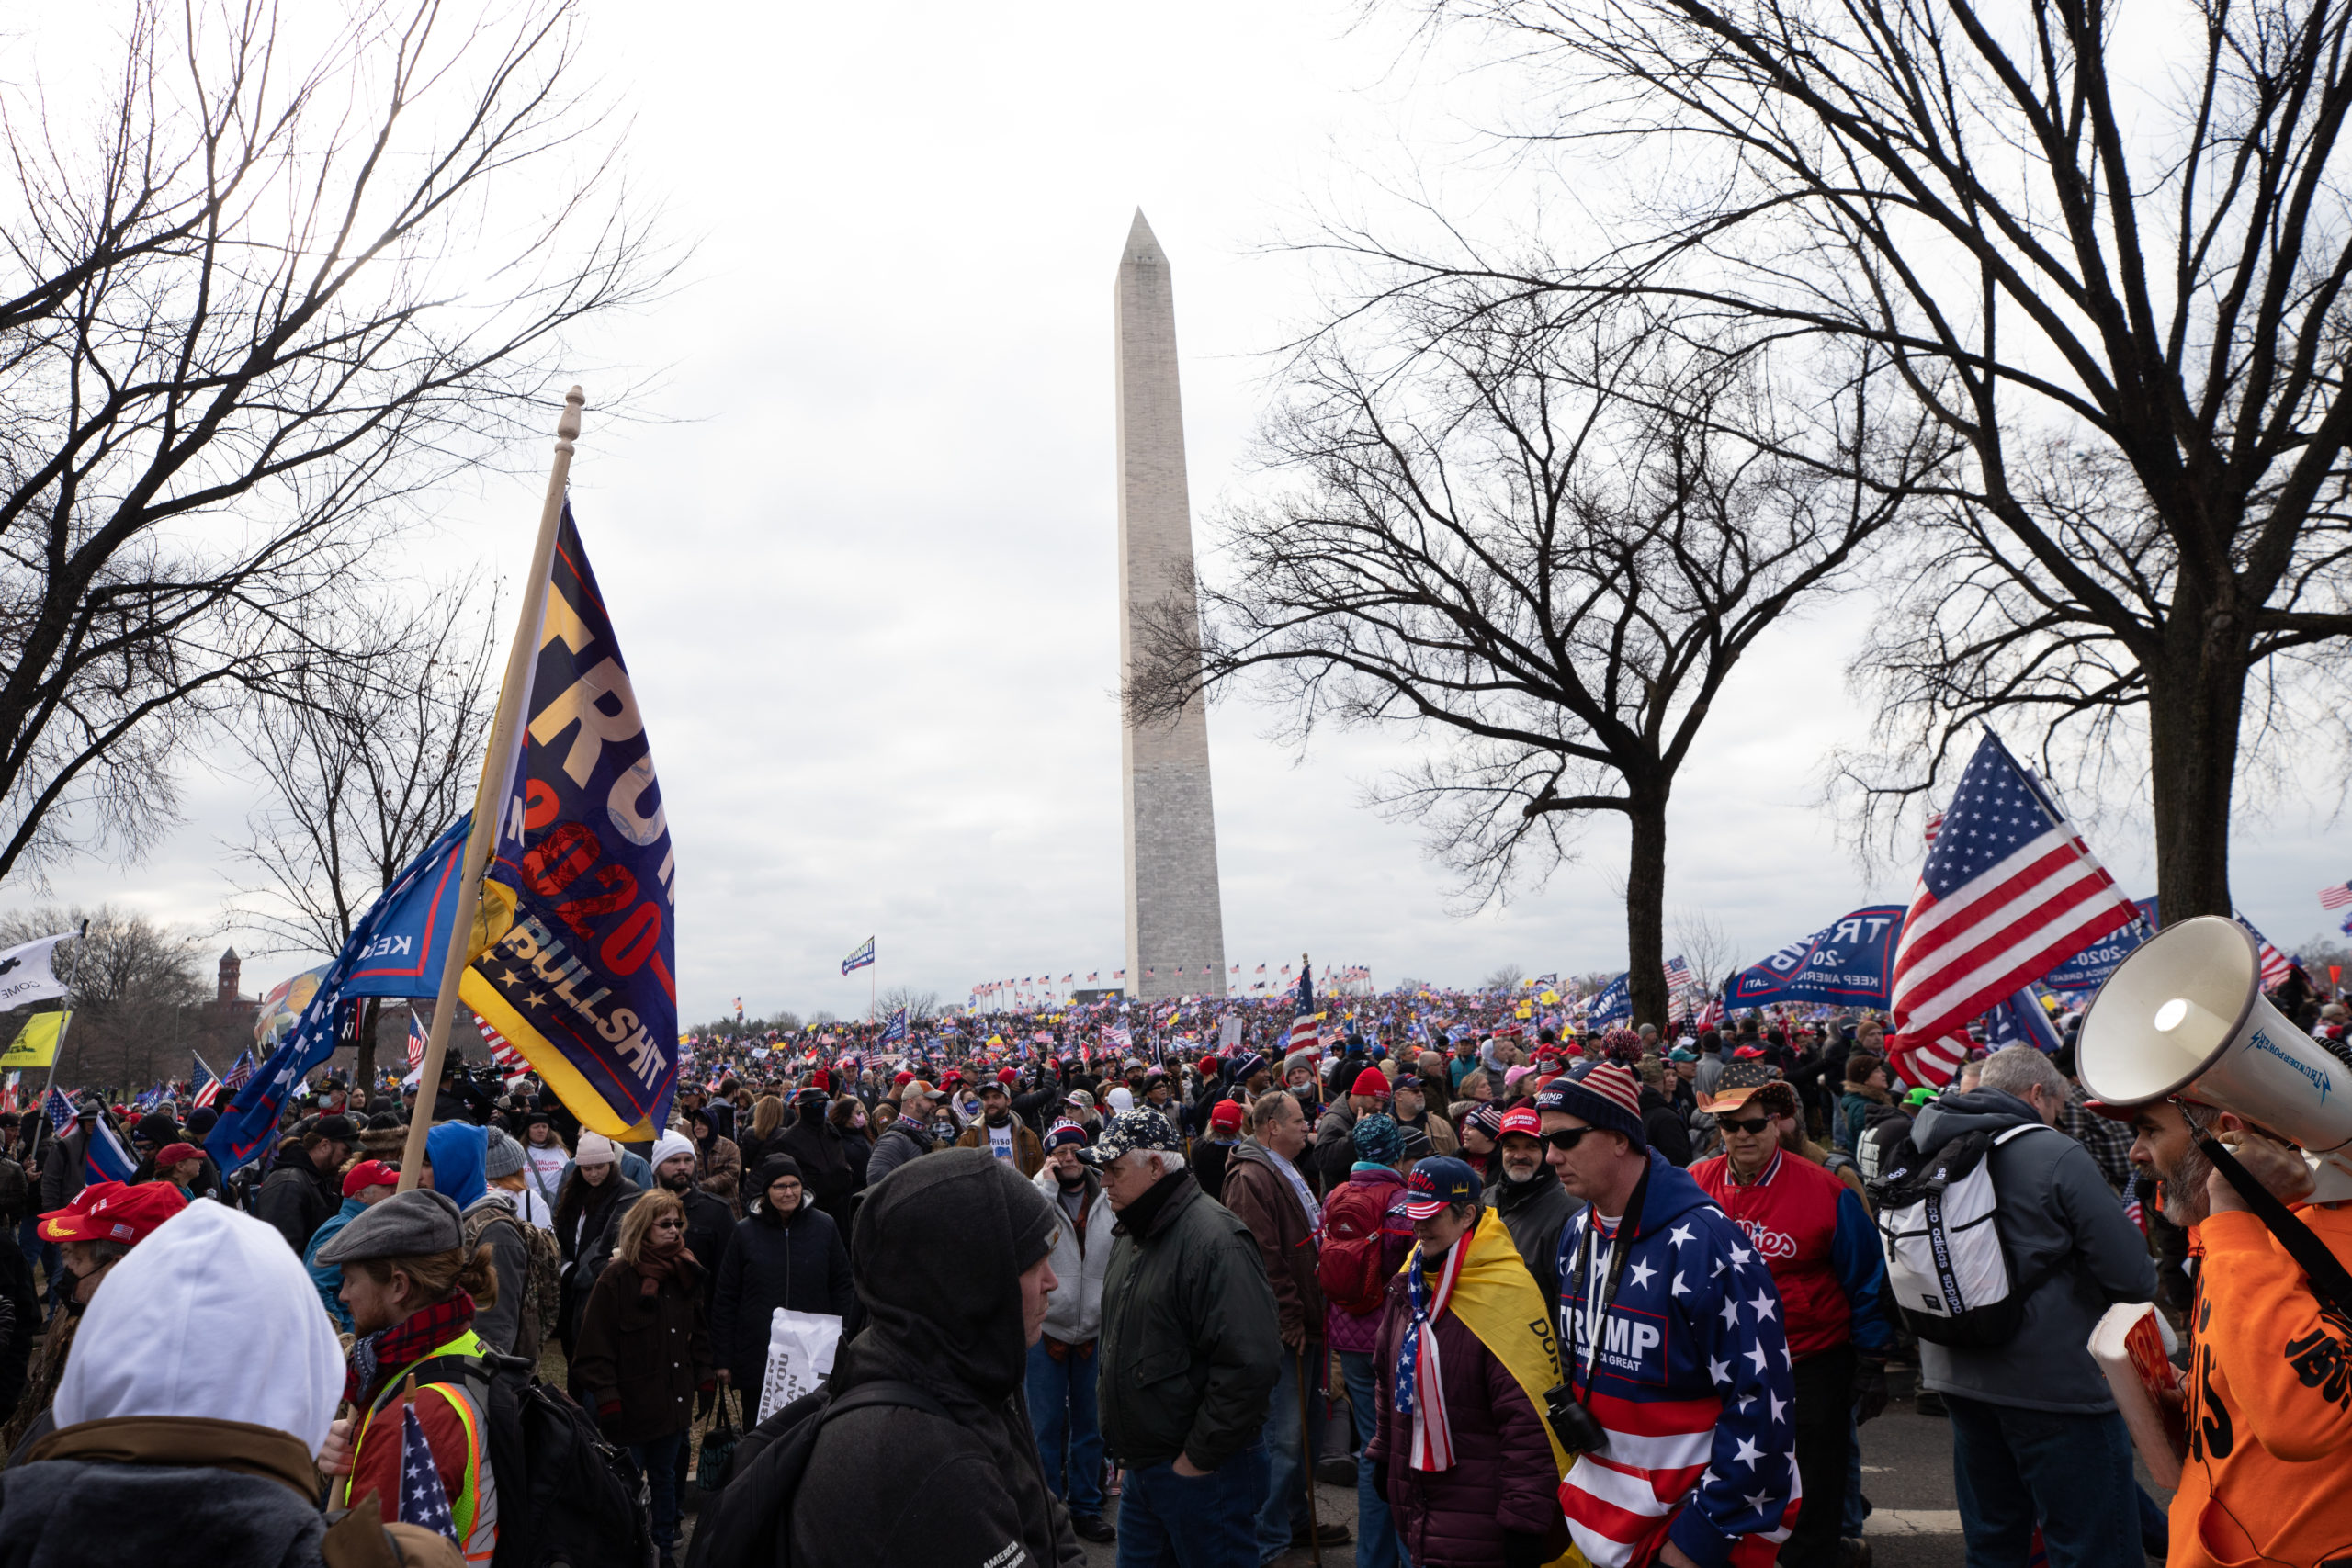 Thousands of supporters of President Donald Trump gathered to hear him speak in Washington, D.C. on Jan. 6, 2021. (Kaylee Greenlee - Daily Caller News Foundation)